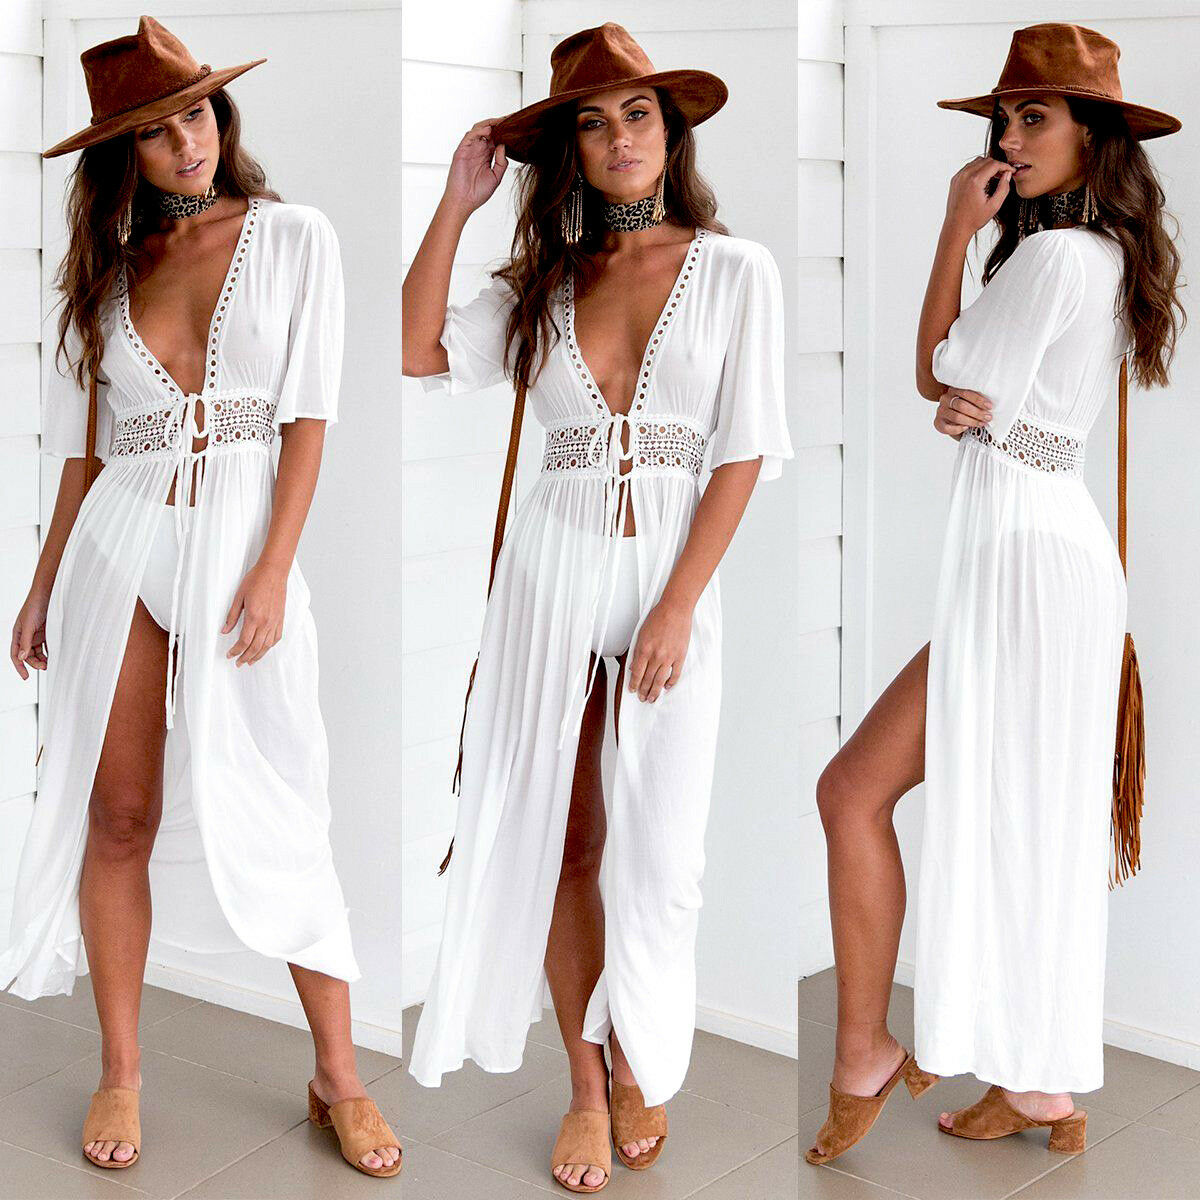 Plus Size Womens Swimwear Bikini Beach Wear Cover Up Kaftan Ladies Summer Long Dress Sexy Cover Up Large Size S-XXXL